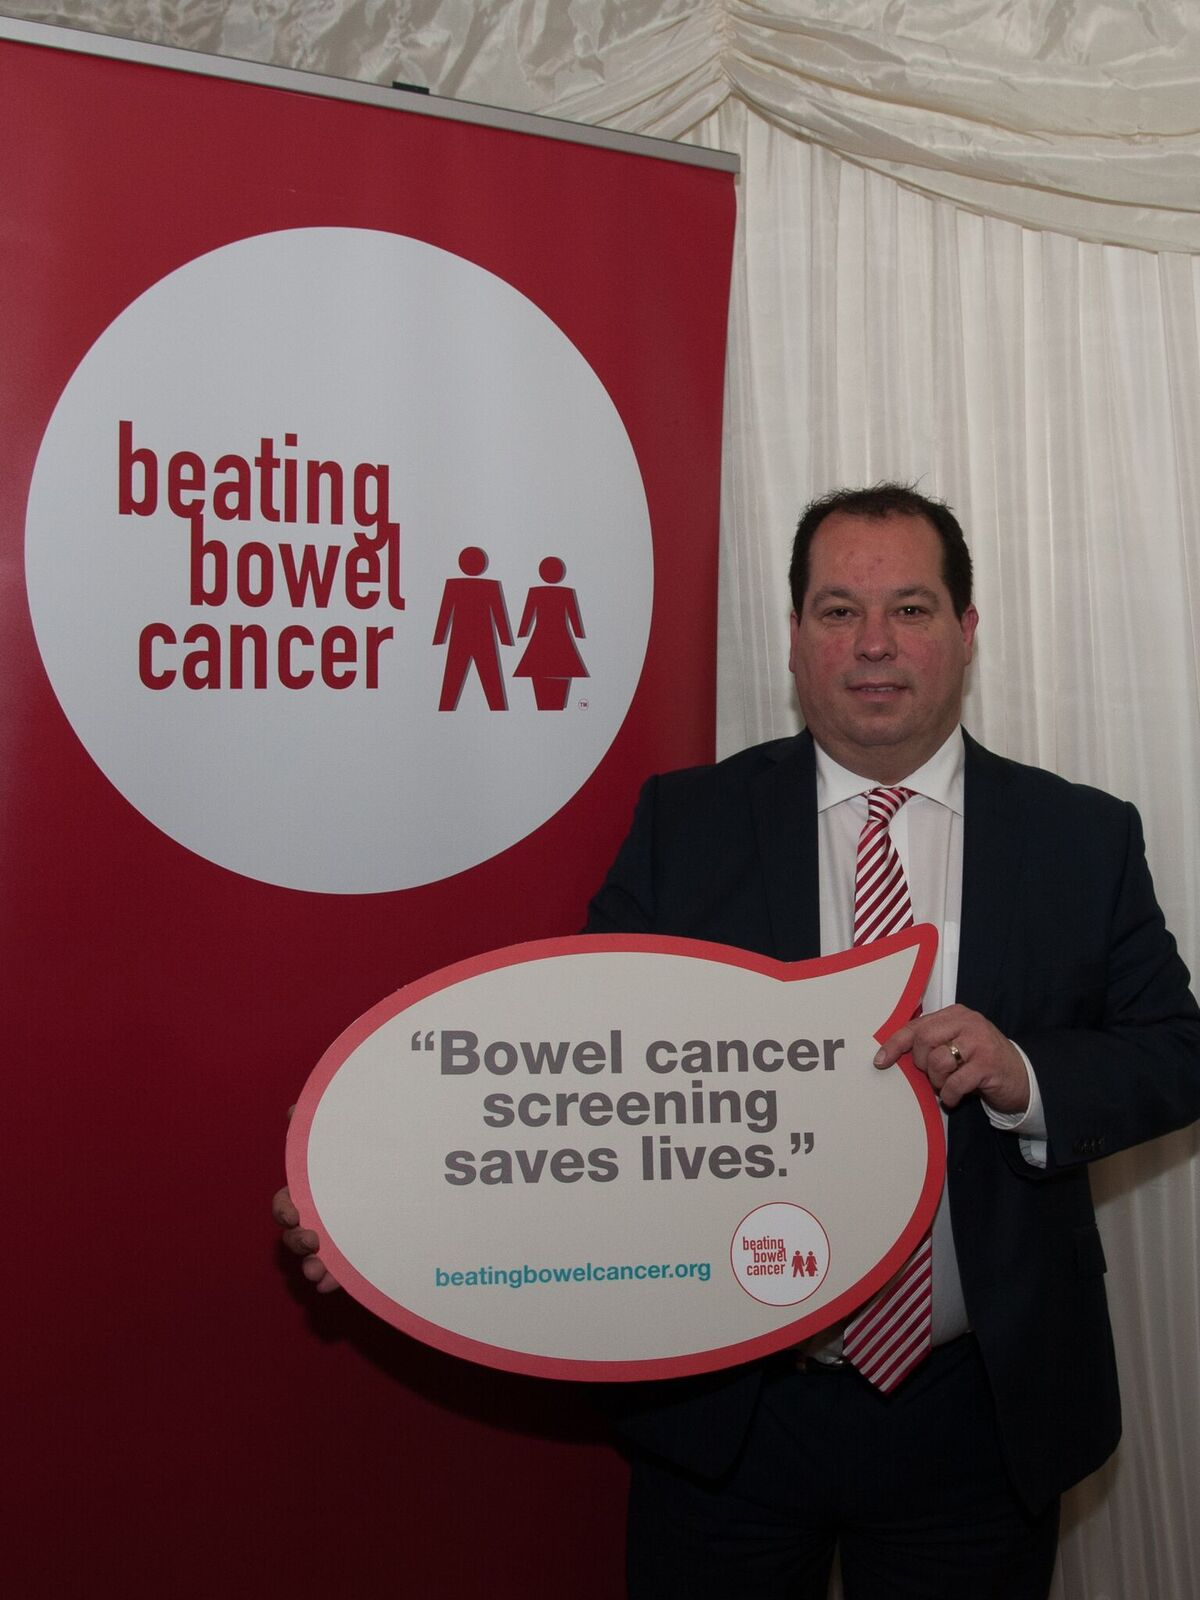 Gerald_Jones_MP_-_Bowel_Cancer_Screening.jpg